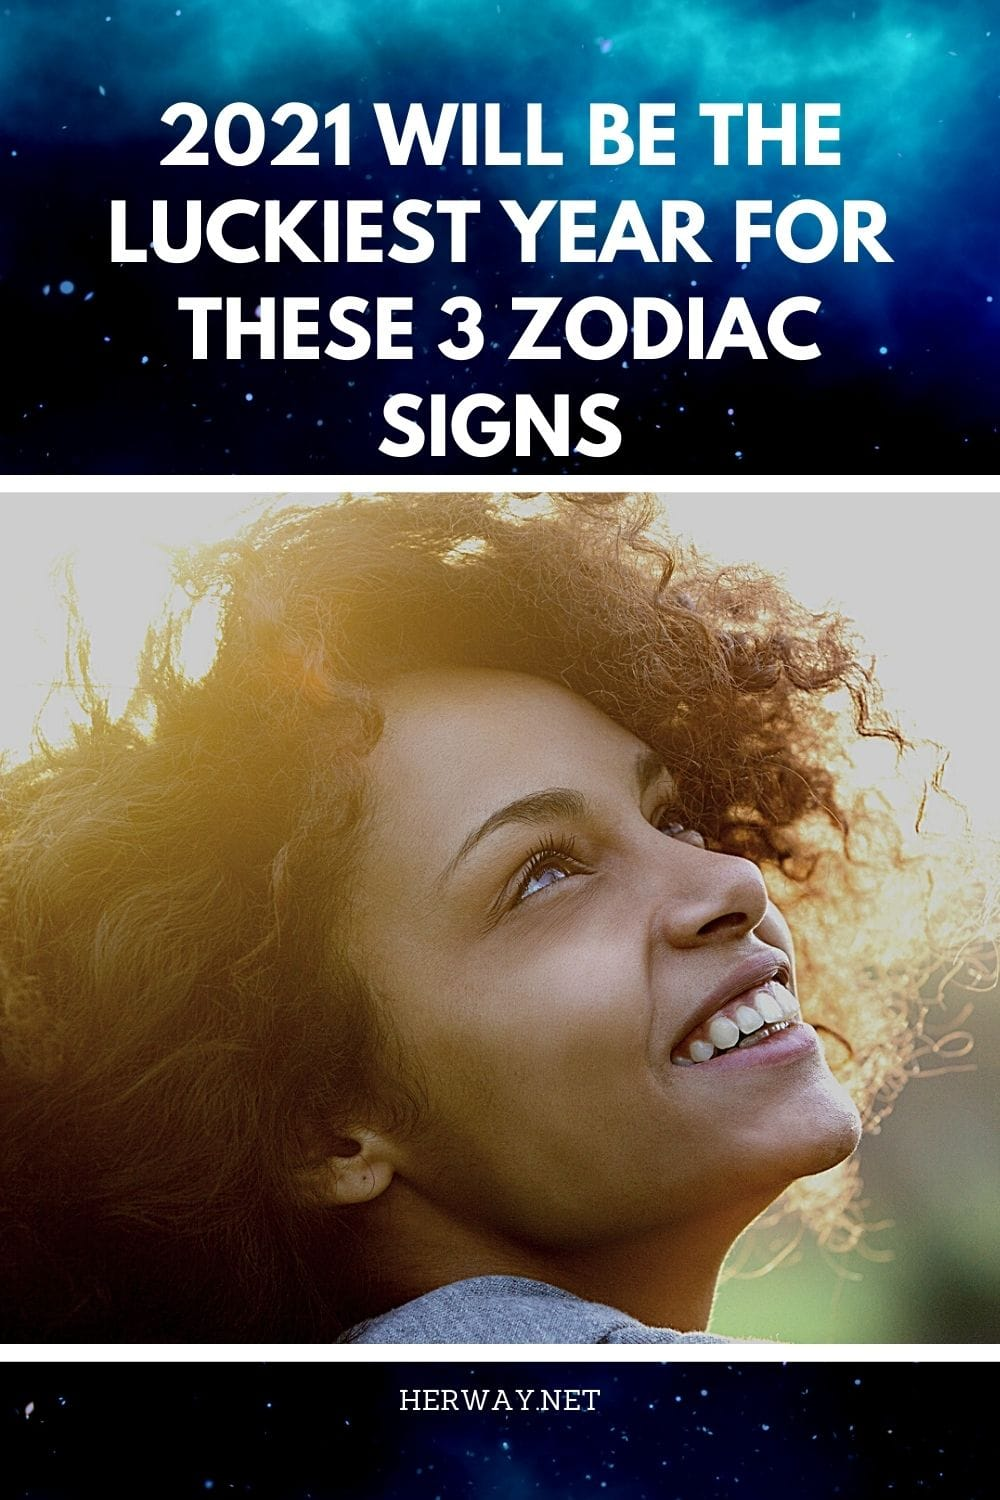 2021 Will Be The Luckiest Year For These 3 Zodiac Signs